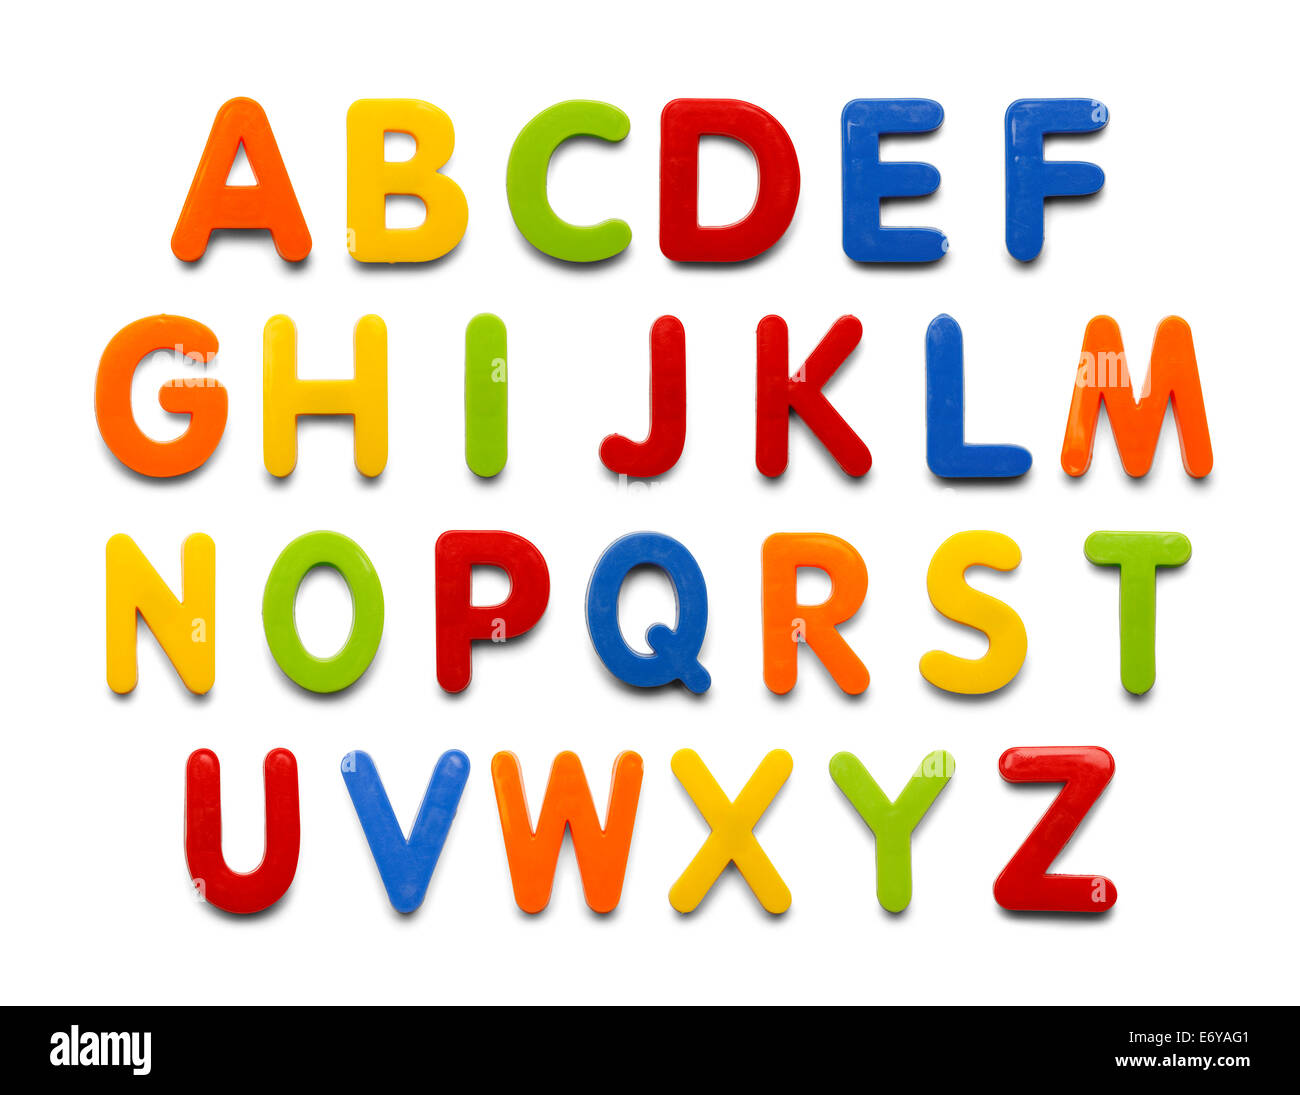 Magnetic Plastic Alphabet colorful ABC Letters Isolated on White Background. - Stock Image